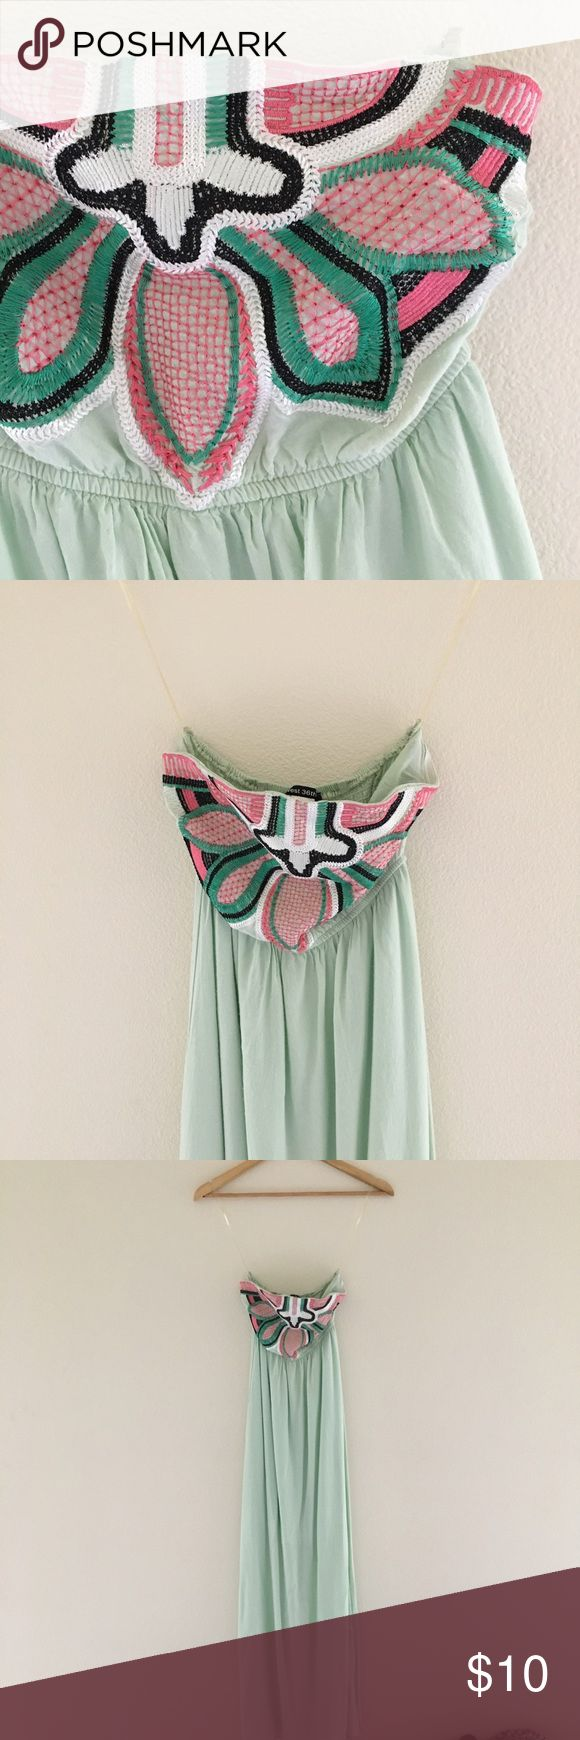 """Mint Maxi Tube Top Dress 🍭 Cute mint strapless tube top dress. Pretty pink/green/black Aztec detailing at the chest. Works best for a larger chest. Lined to a mini dress (see photo 6). Worn/washed once. ✨Some pilling at hips + a few loose threads in the embroidery. Priced to reflect imperfections.  🍏Material:  100% Rayon 🍏Measurements:  Chest - 12"""" when not stretched Length - 27"""" lining 49"""" shell 🍭🍬Feel free to make an offer. No trades please. From a smoke free home.🍬🍭 West 36th…"""